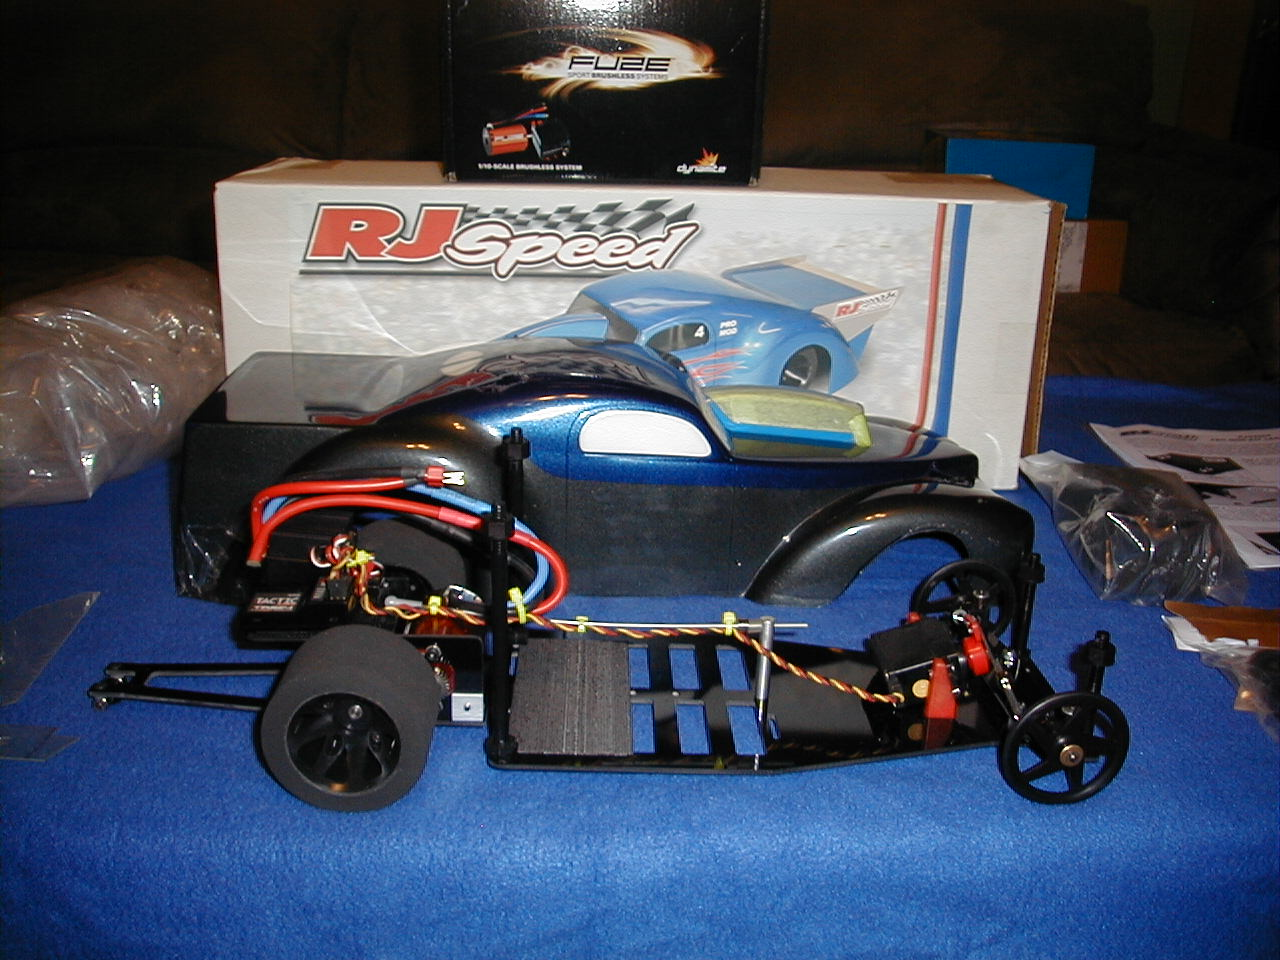 NEW BRUSHLESS PROMOD,,EVERYTING IS NEW,SEE PICS!! - R/C Tech Forums